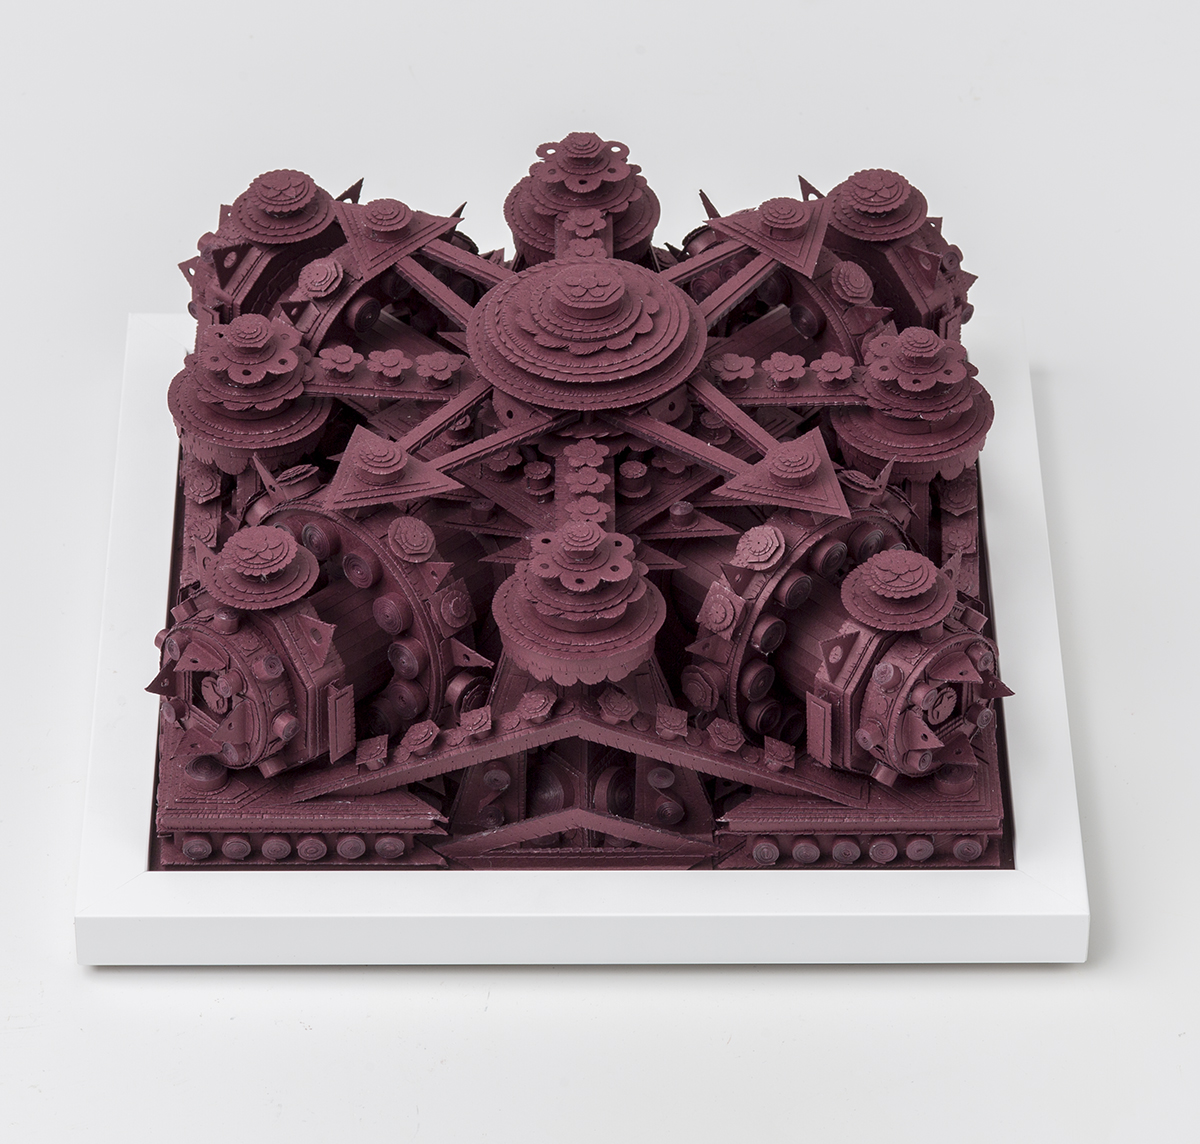 Myriad Layers of Intricately Cut Paper Construct Architectural Sculptures by Artist Michael Velliquette